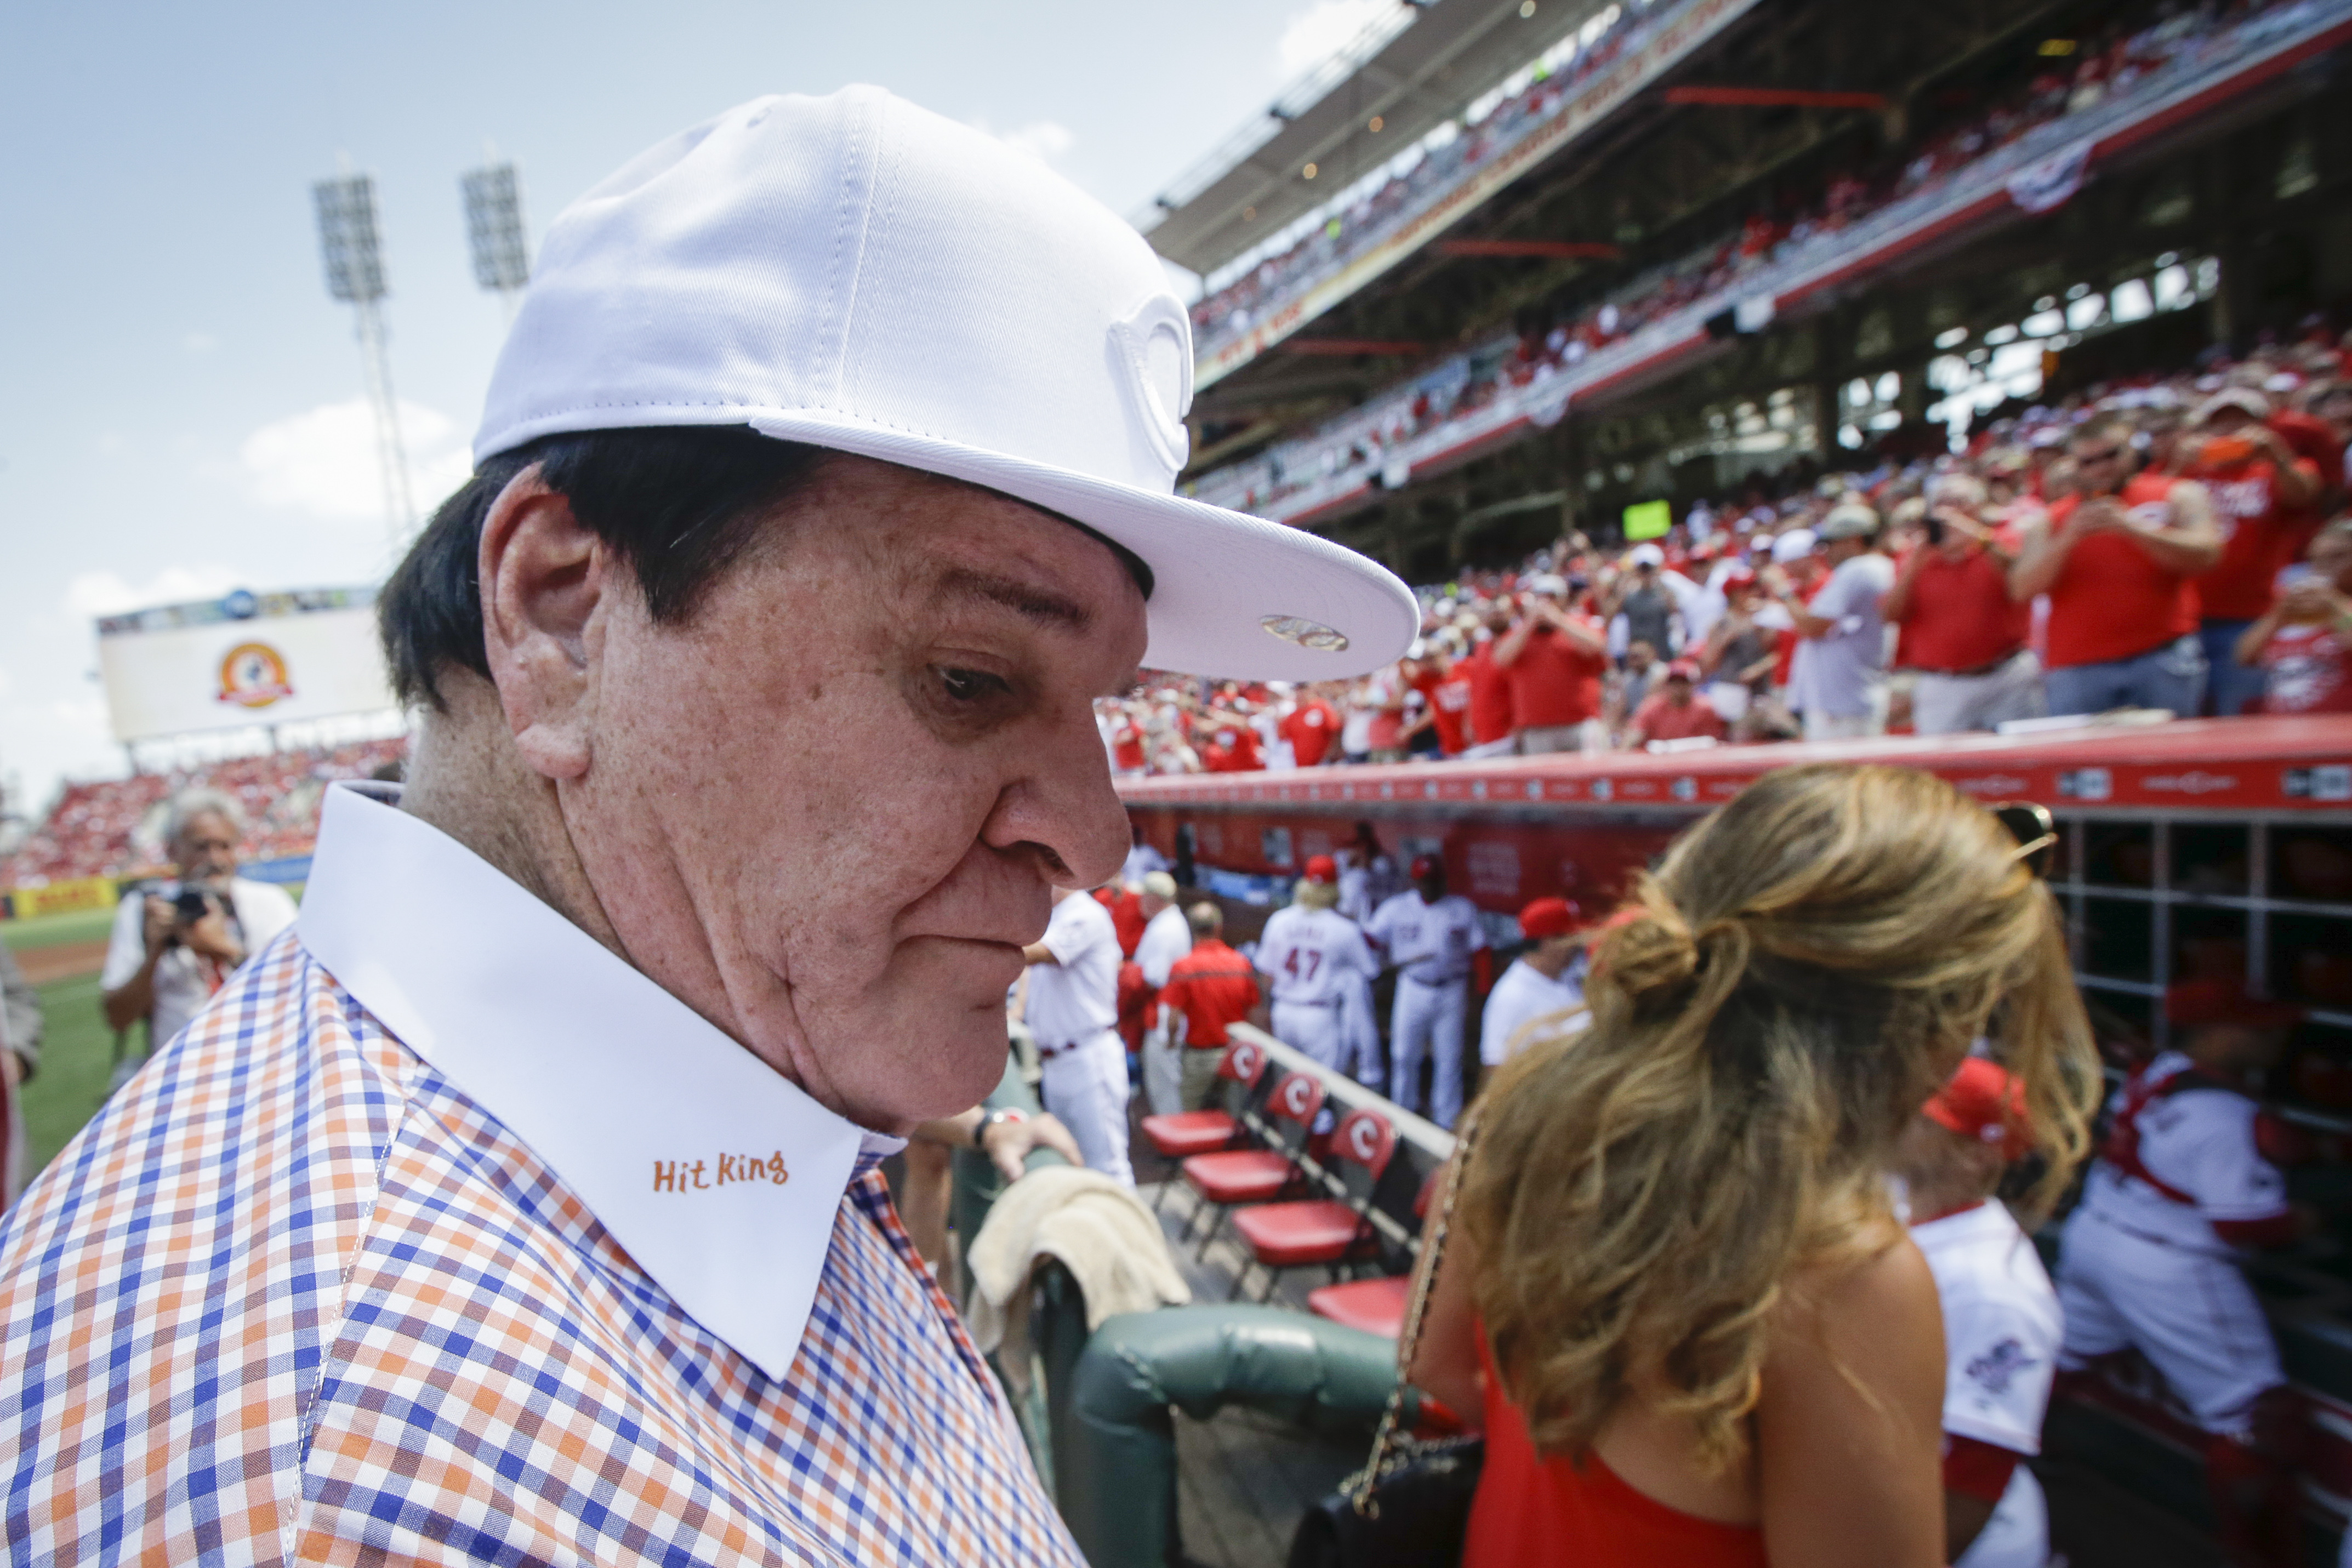 Former Cincinnati Reds player and manager Pete Rose walks into the dugout as fan cheer following a ceremony to induct him into the Cincinnati Reds Hall of Fame before a baseball game against the San Diego Padres, Saturday, June 25, 2016, in Cincinnati. (A